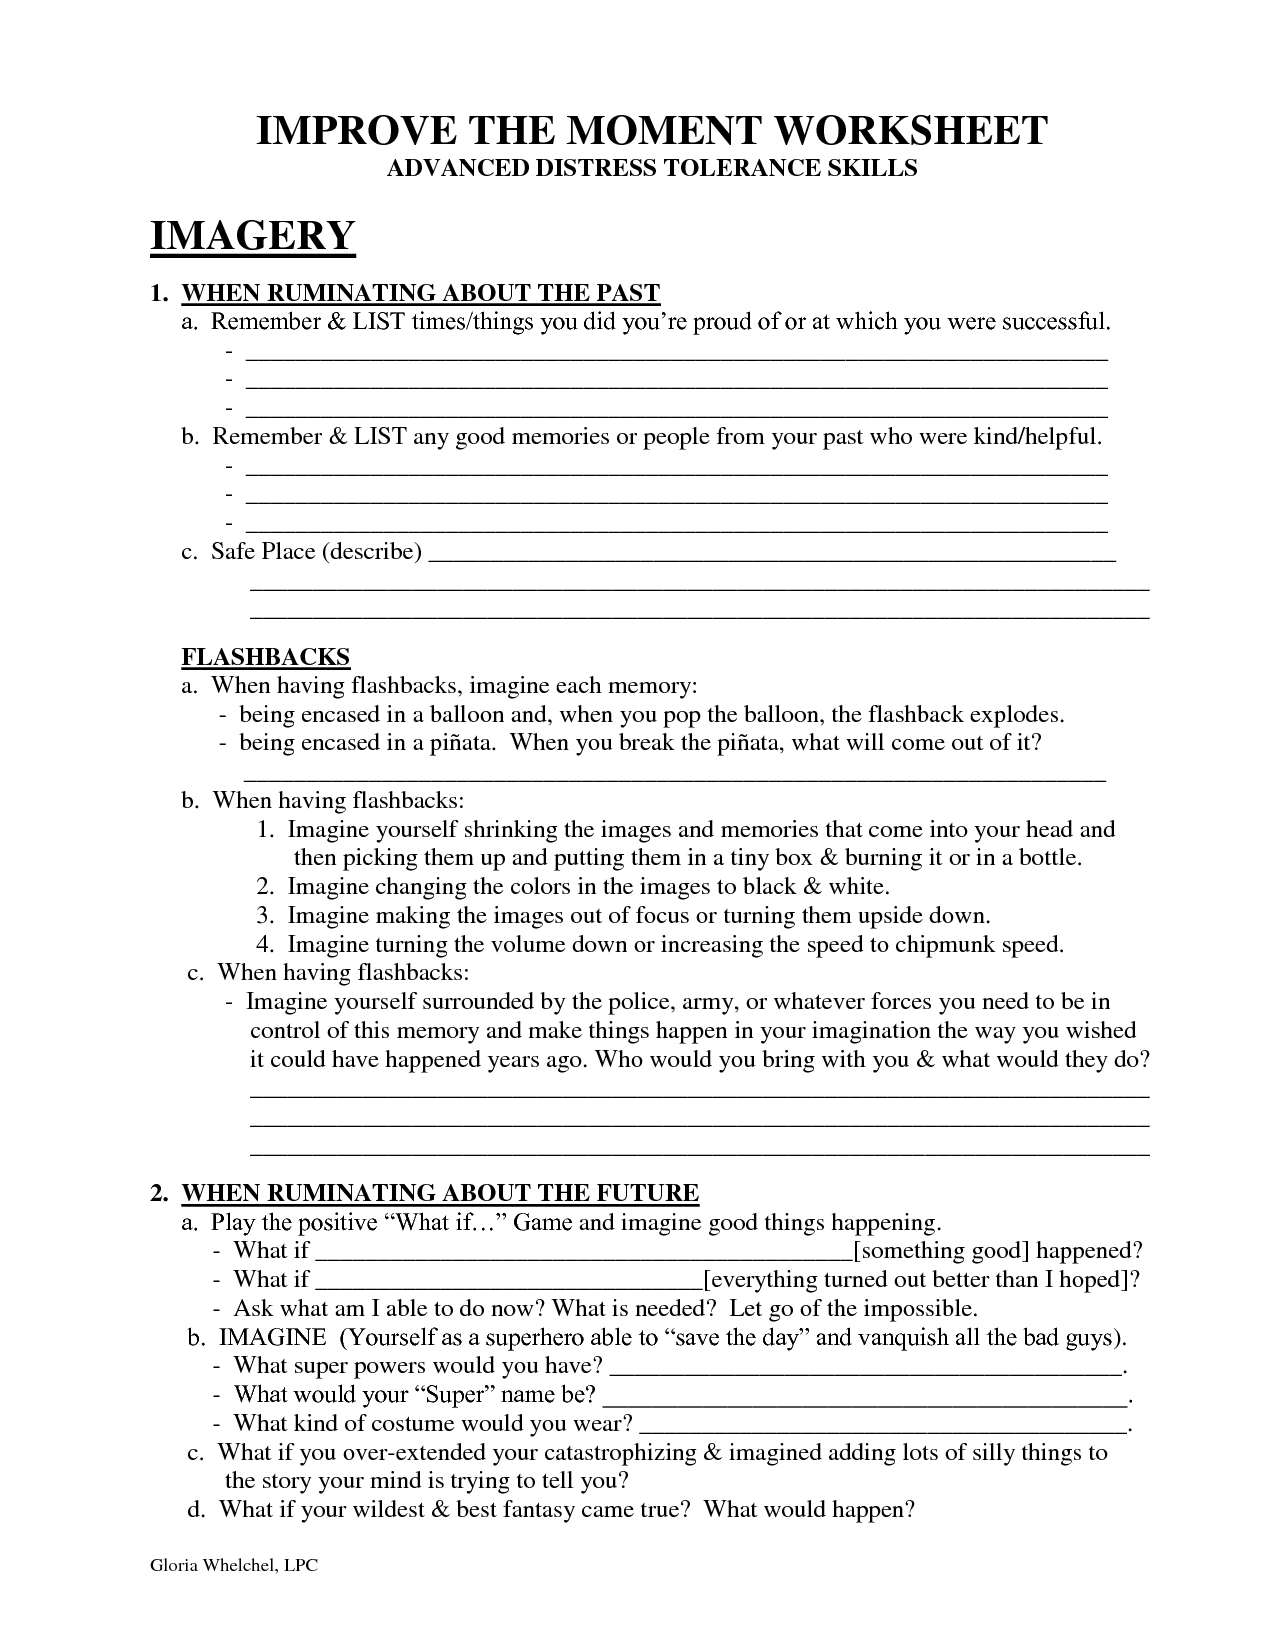 Worksheets Anxiety Worksheets improve the moment worksheet dbt self help therapy parenting help